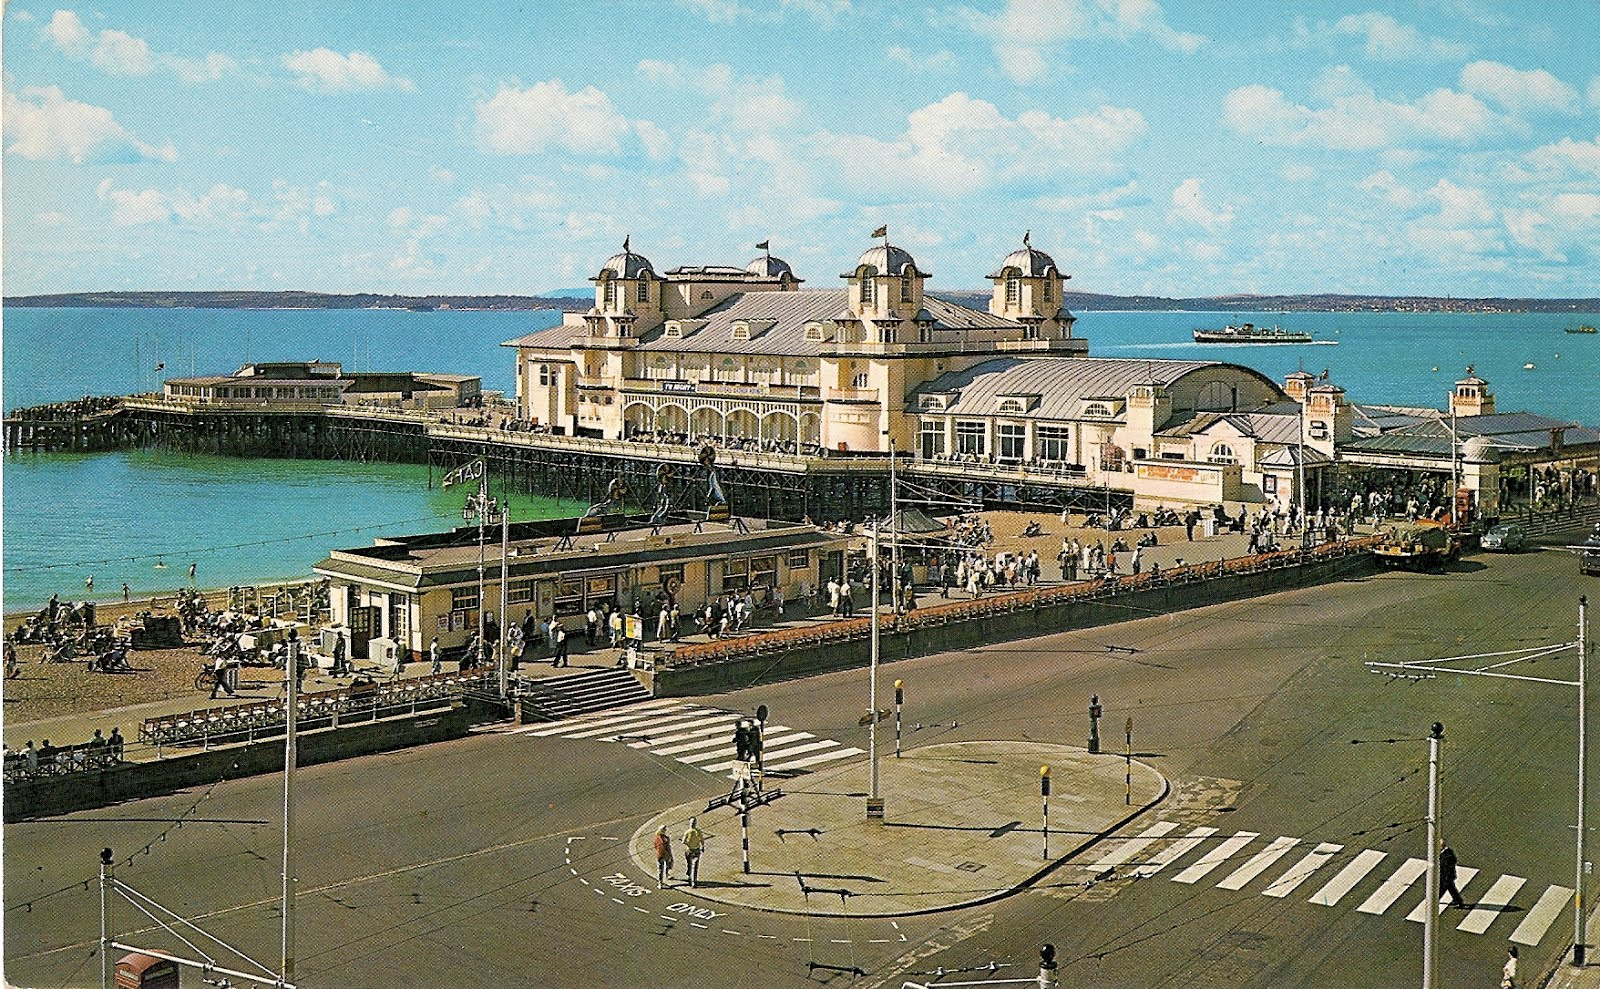 South Parade Pier in the 1950s